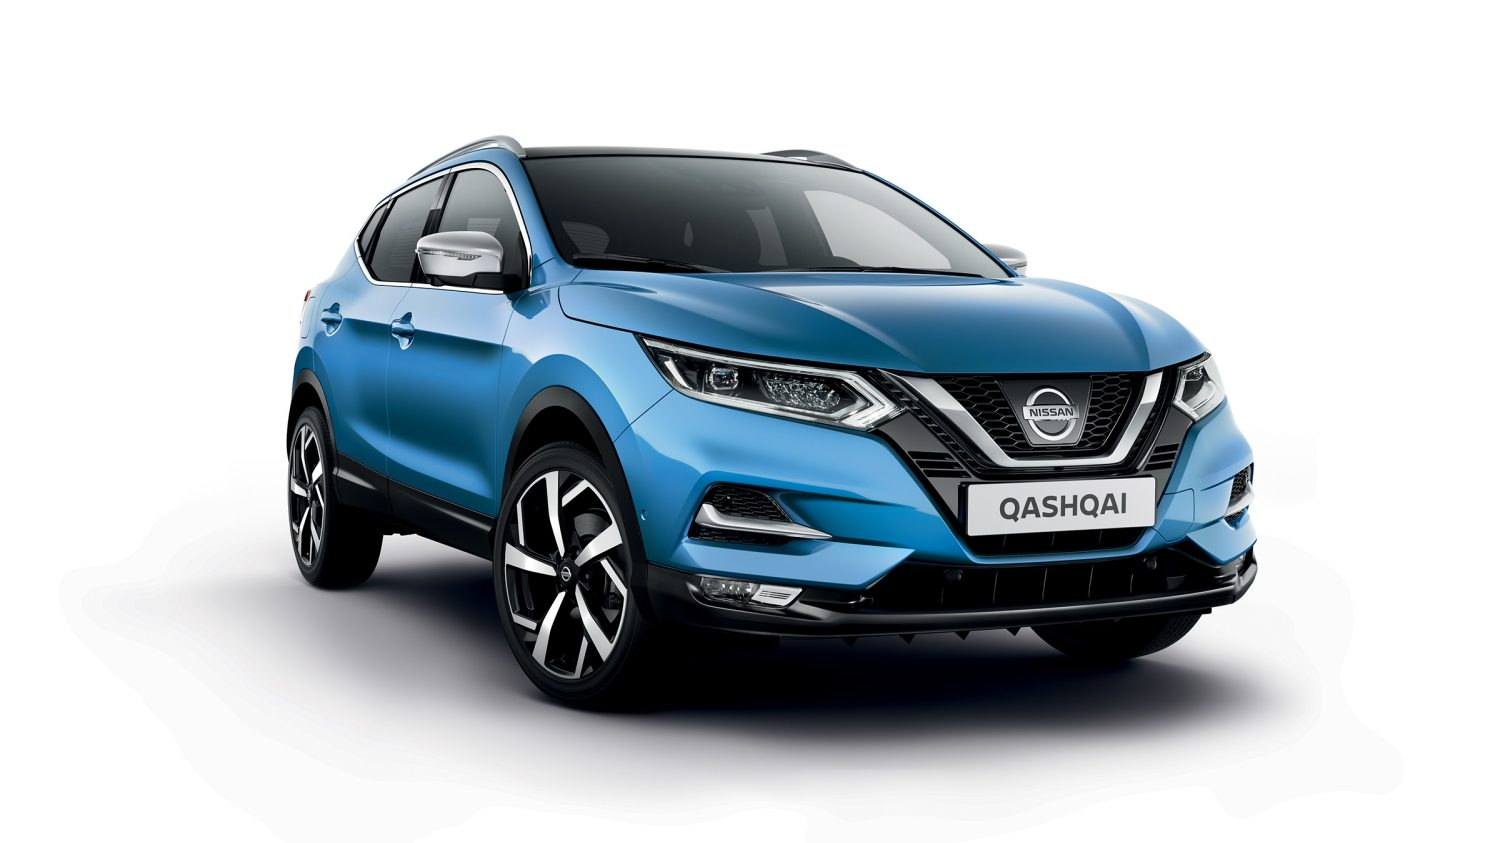 precios y versiones nissan qashqai crossover 4x4 nissan. Black Bedroom Furniture Sets. Home Design Ideas